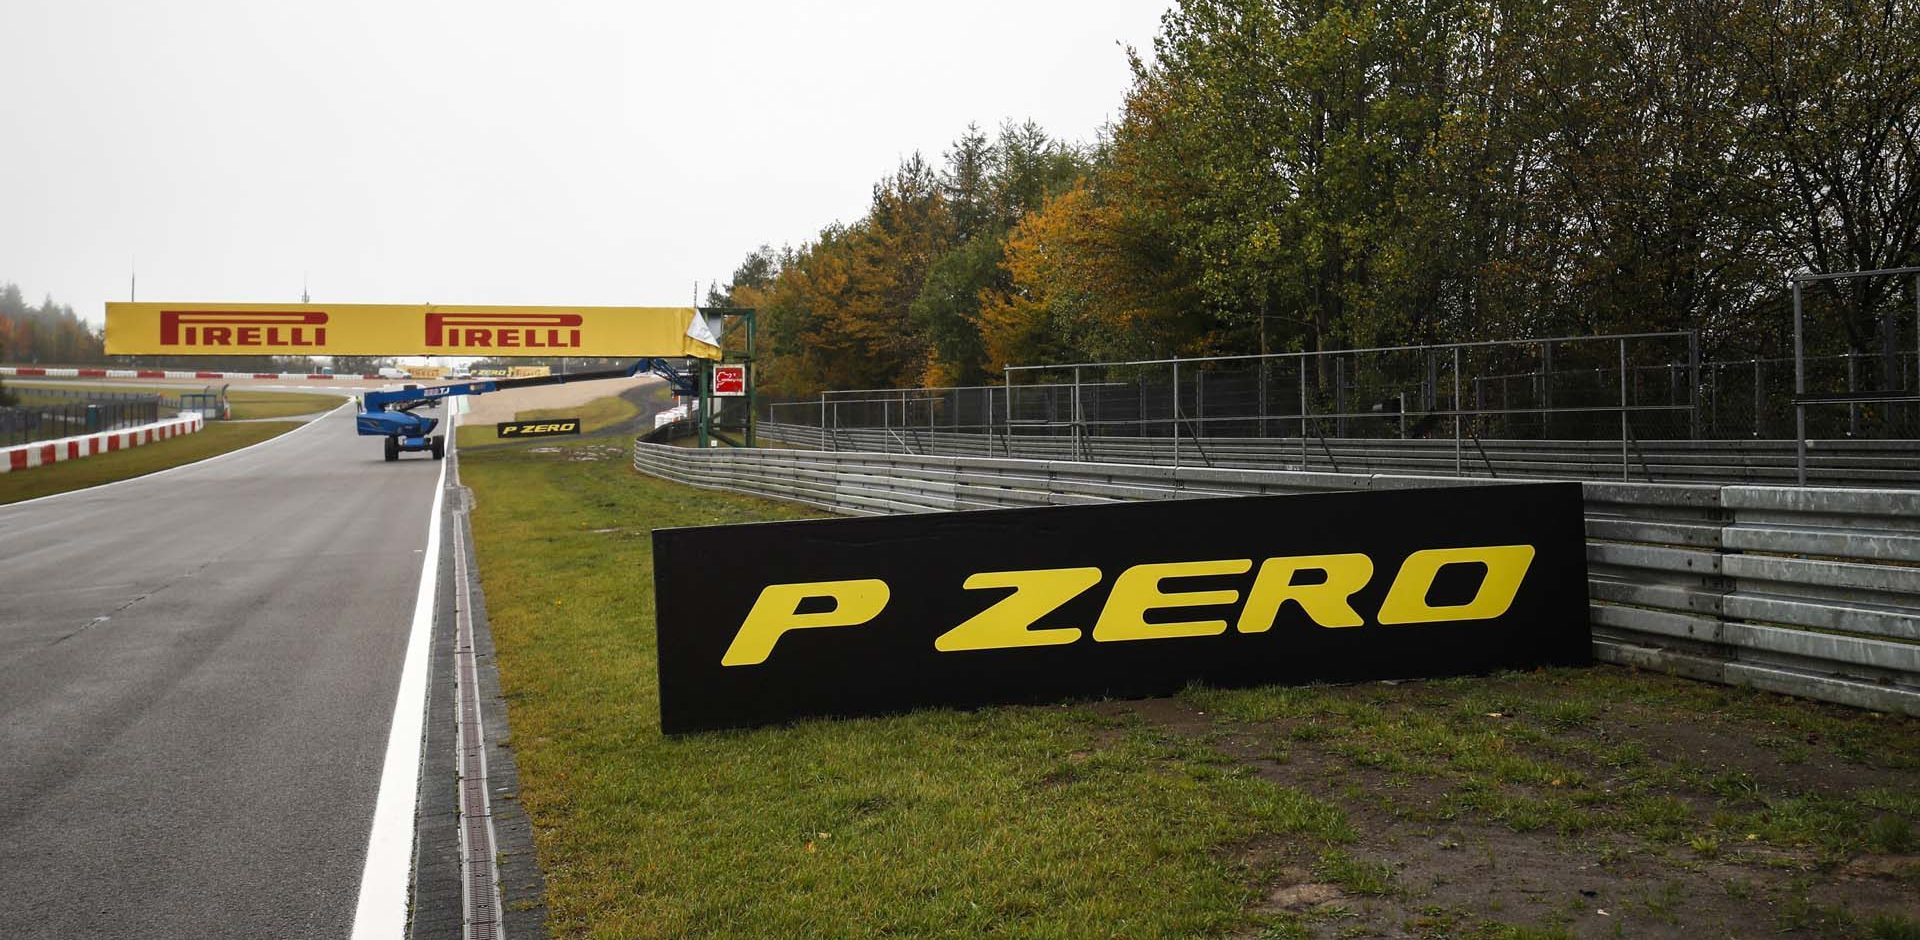 N√ľRBURGRING, GERMANY - OCTOBER 08: Pirelli and P Zero branding around the circuit during the Eifel GP at N√ľrburgring on Thursday October 08, 2020, Germany. (Photo by Zak Mauger / LAT Images)